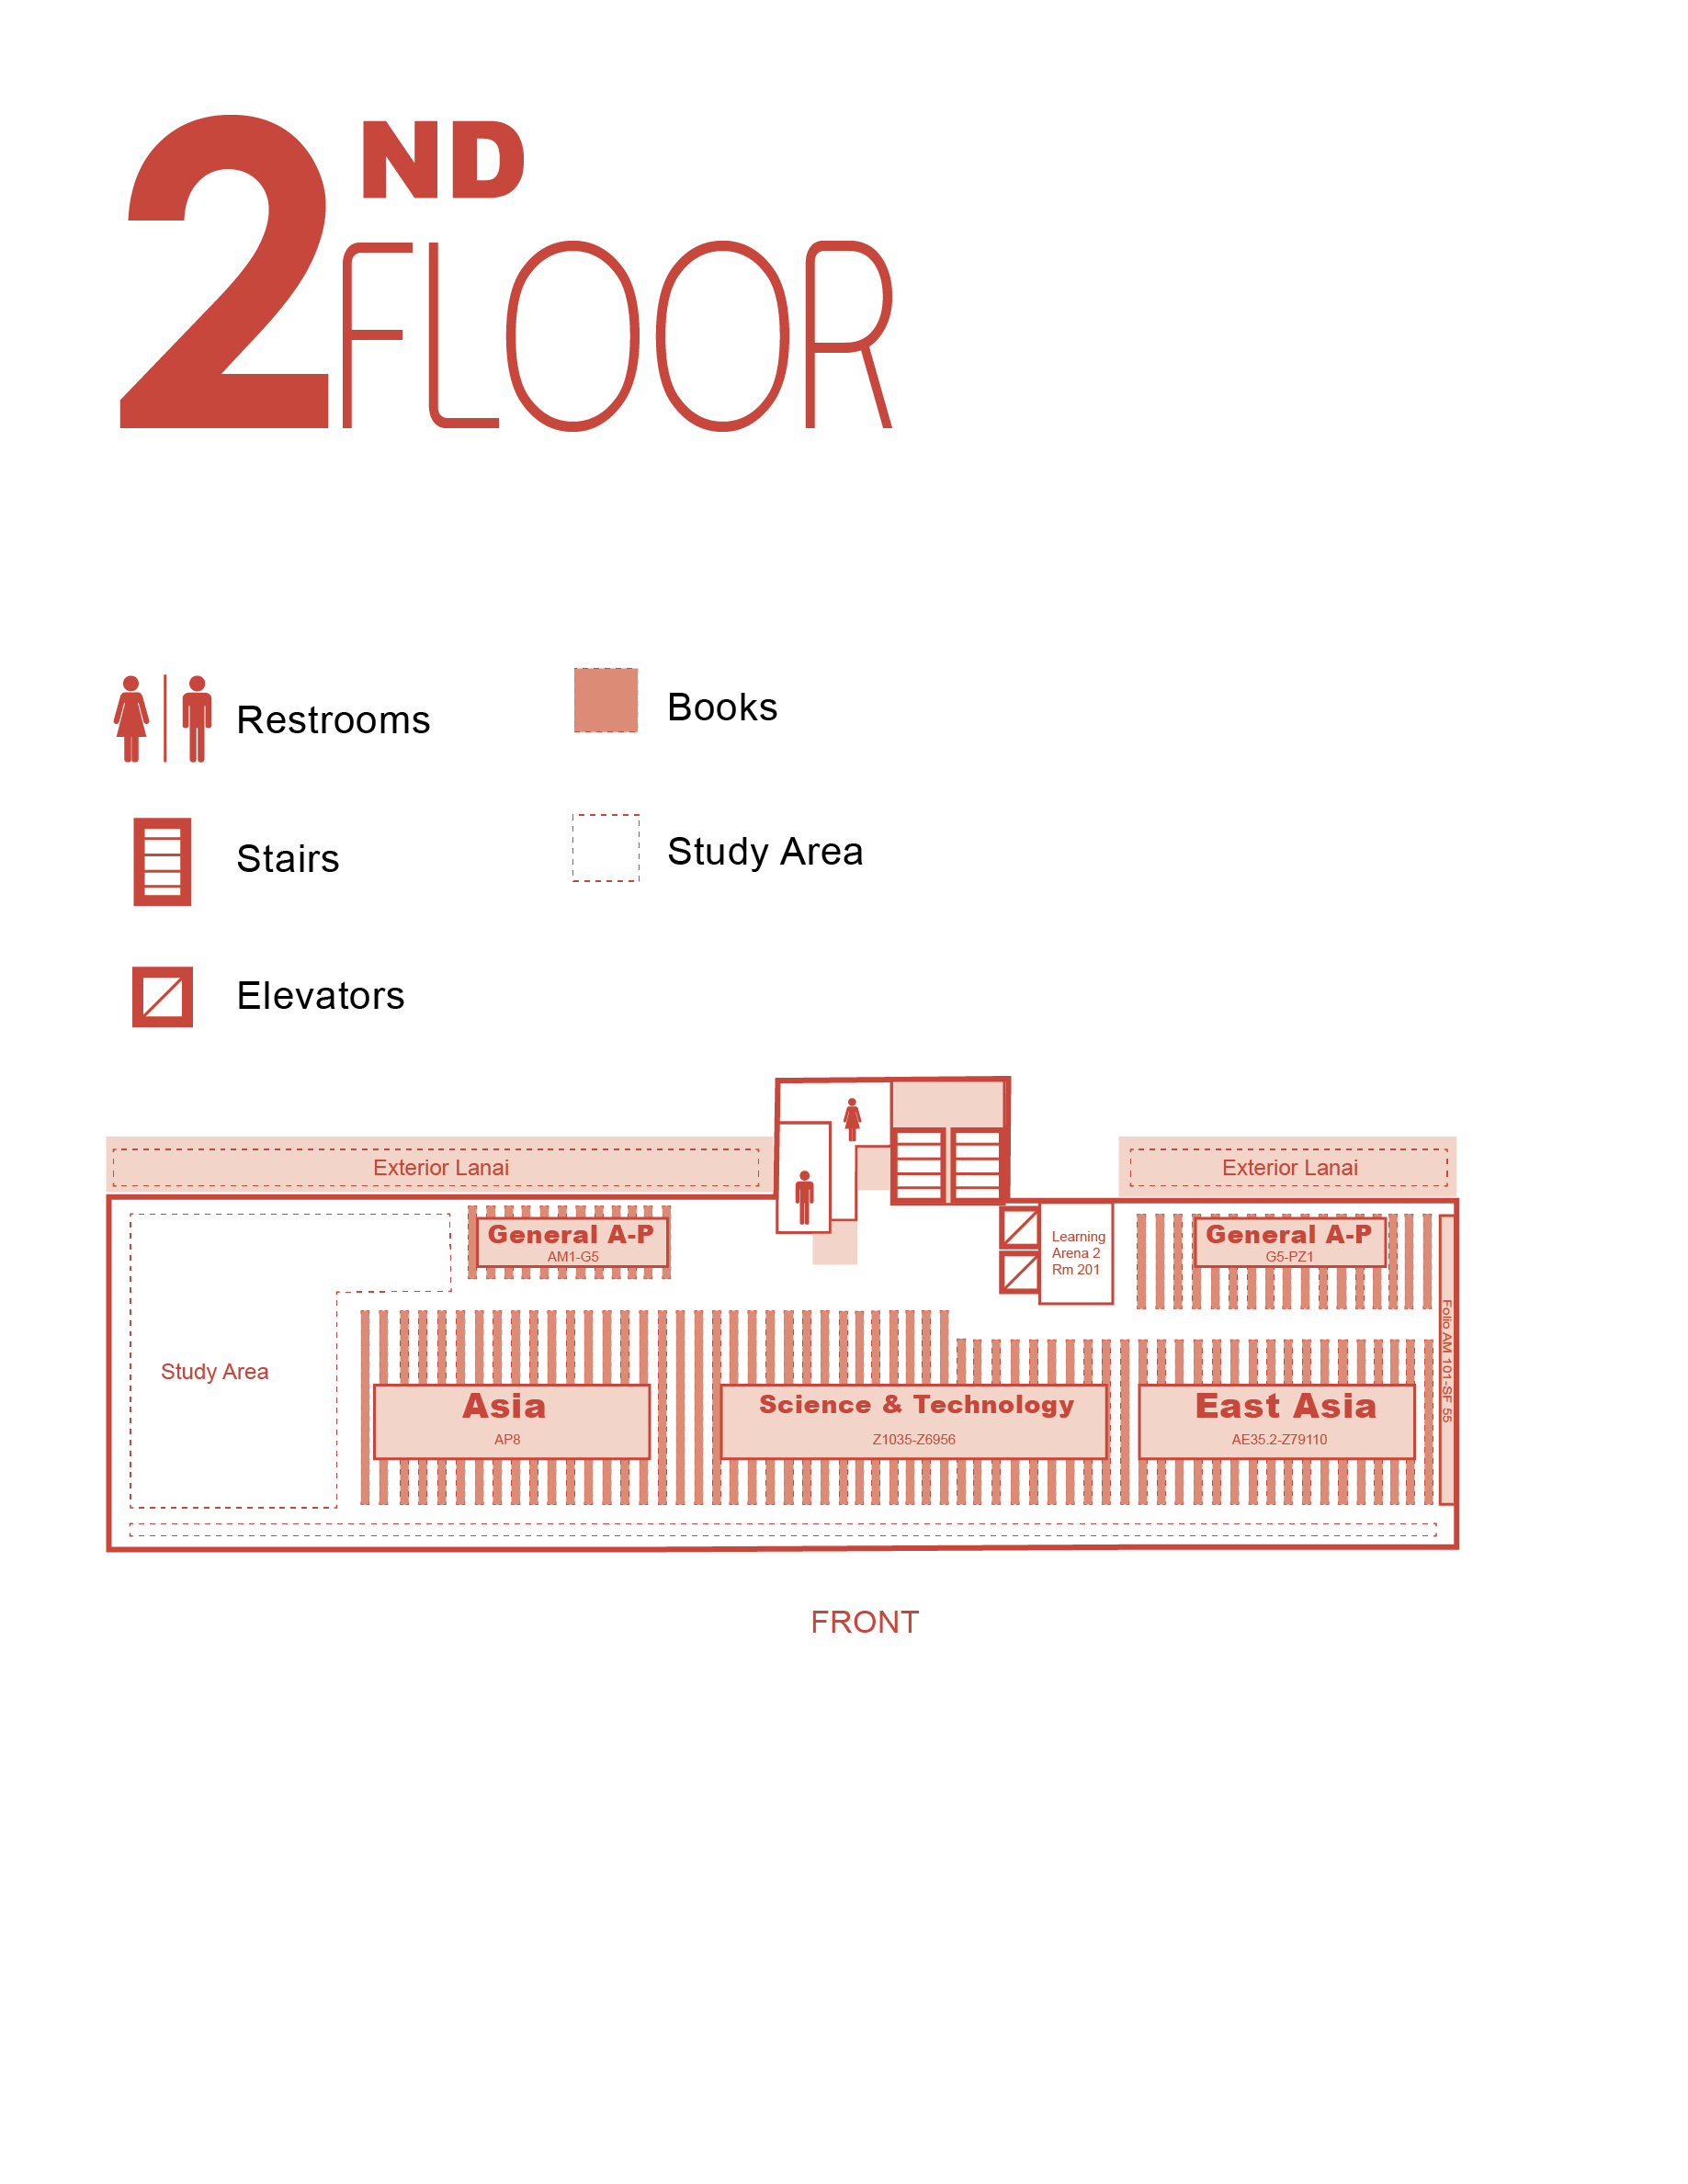 Sinclair second floor map